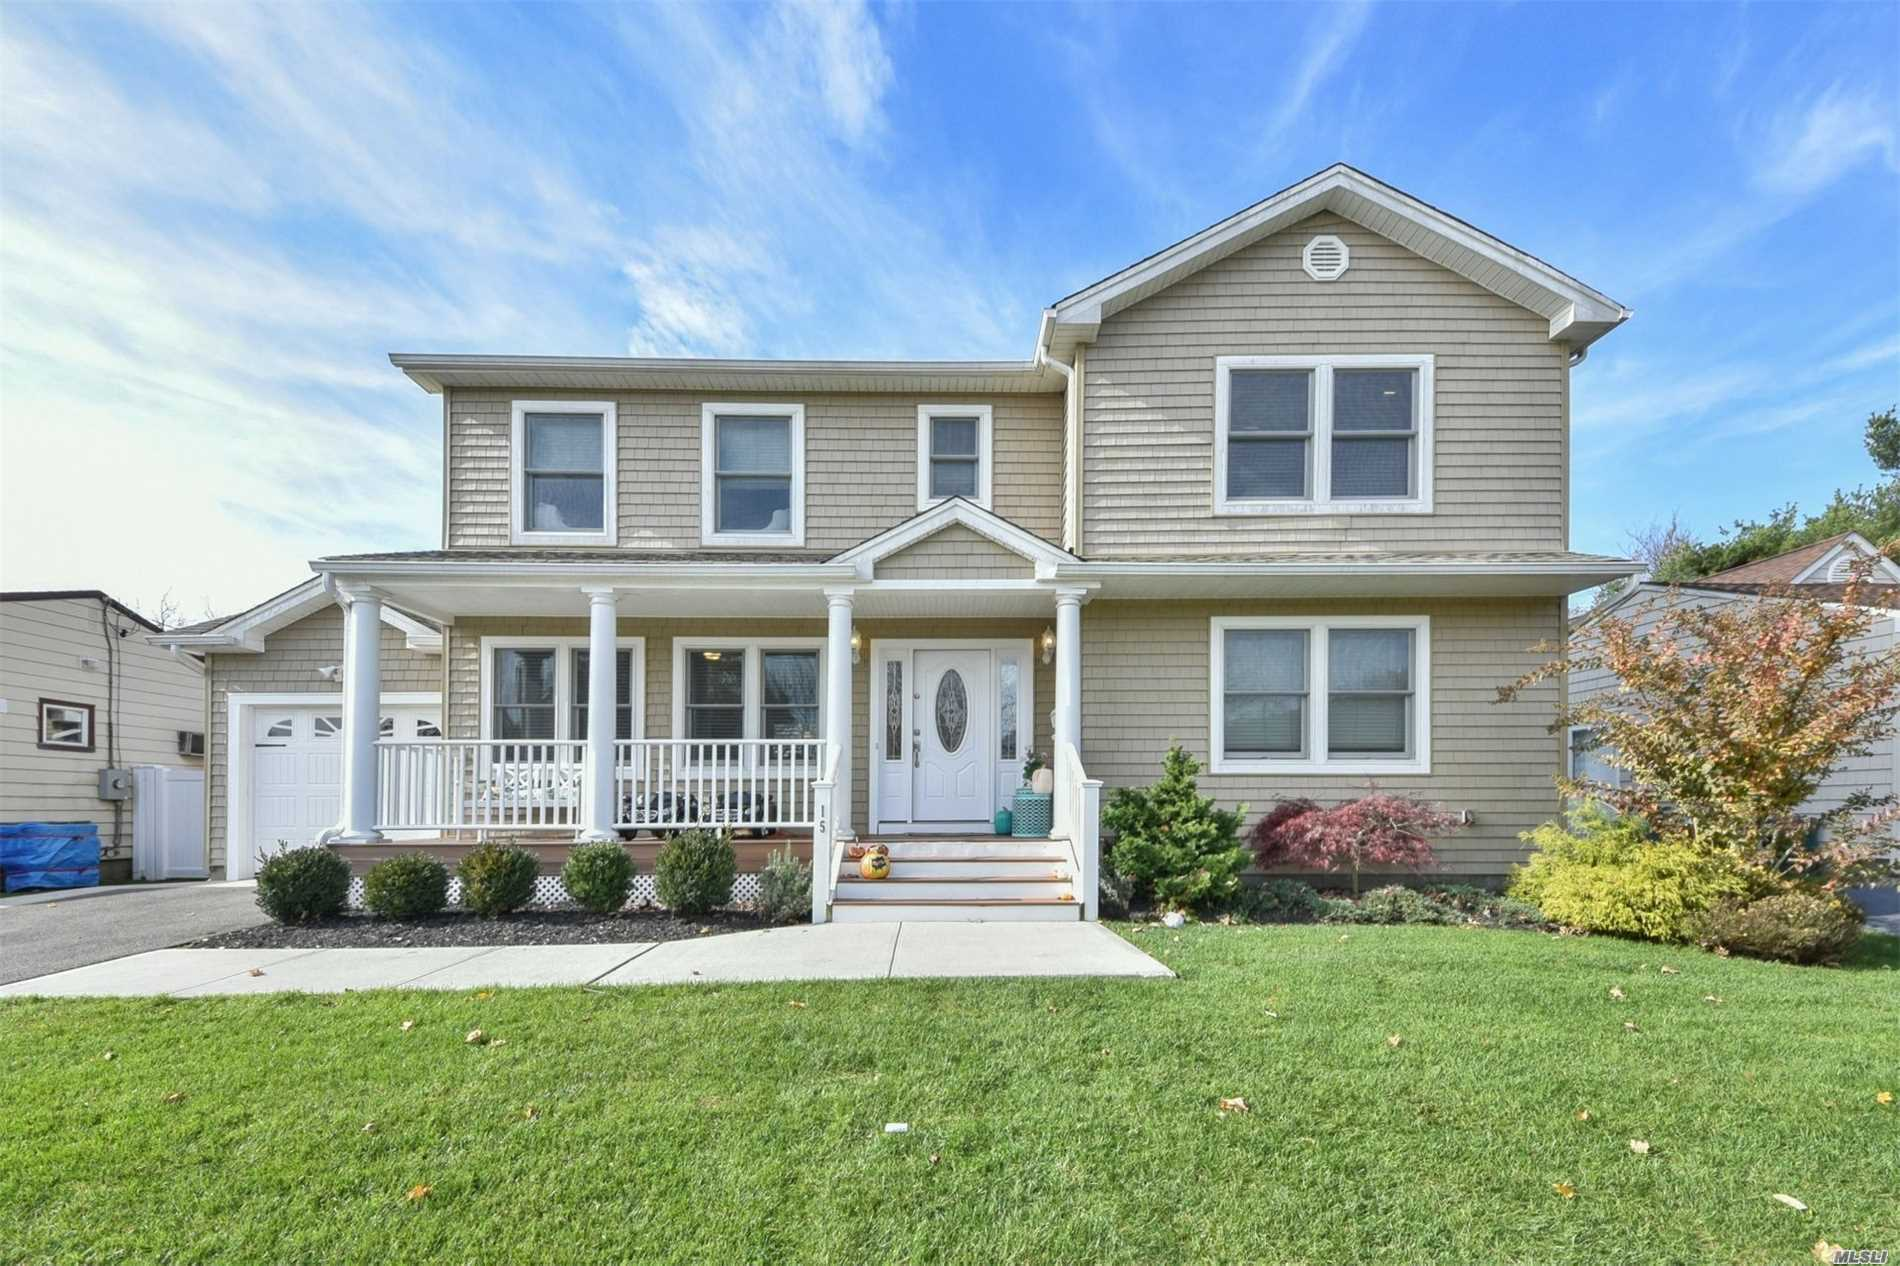 This 4 Year Old Colonial Shows Like New.Located Mid Block On Lush Manicured Landscaped Property With A Country Club Like Backyard Featuring, S/S Granite Center Isle Custom Cabinets Eik, 3 Beautful Bathrooms, 4 Brs On 1 Level, 200 Amps, Trex Porch, Hardwd.Many Energy Efficient Features Including Appliances , Furnace, Cac, Windows, Etc. Taxes Being Grieved For The 1st Time!!!!A Must See!Seller Will Offer $5000 A Year For 3 Years Towards Taxes!!